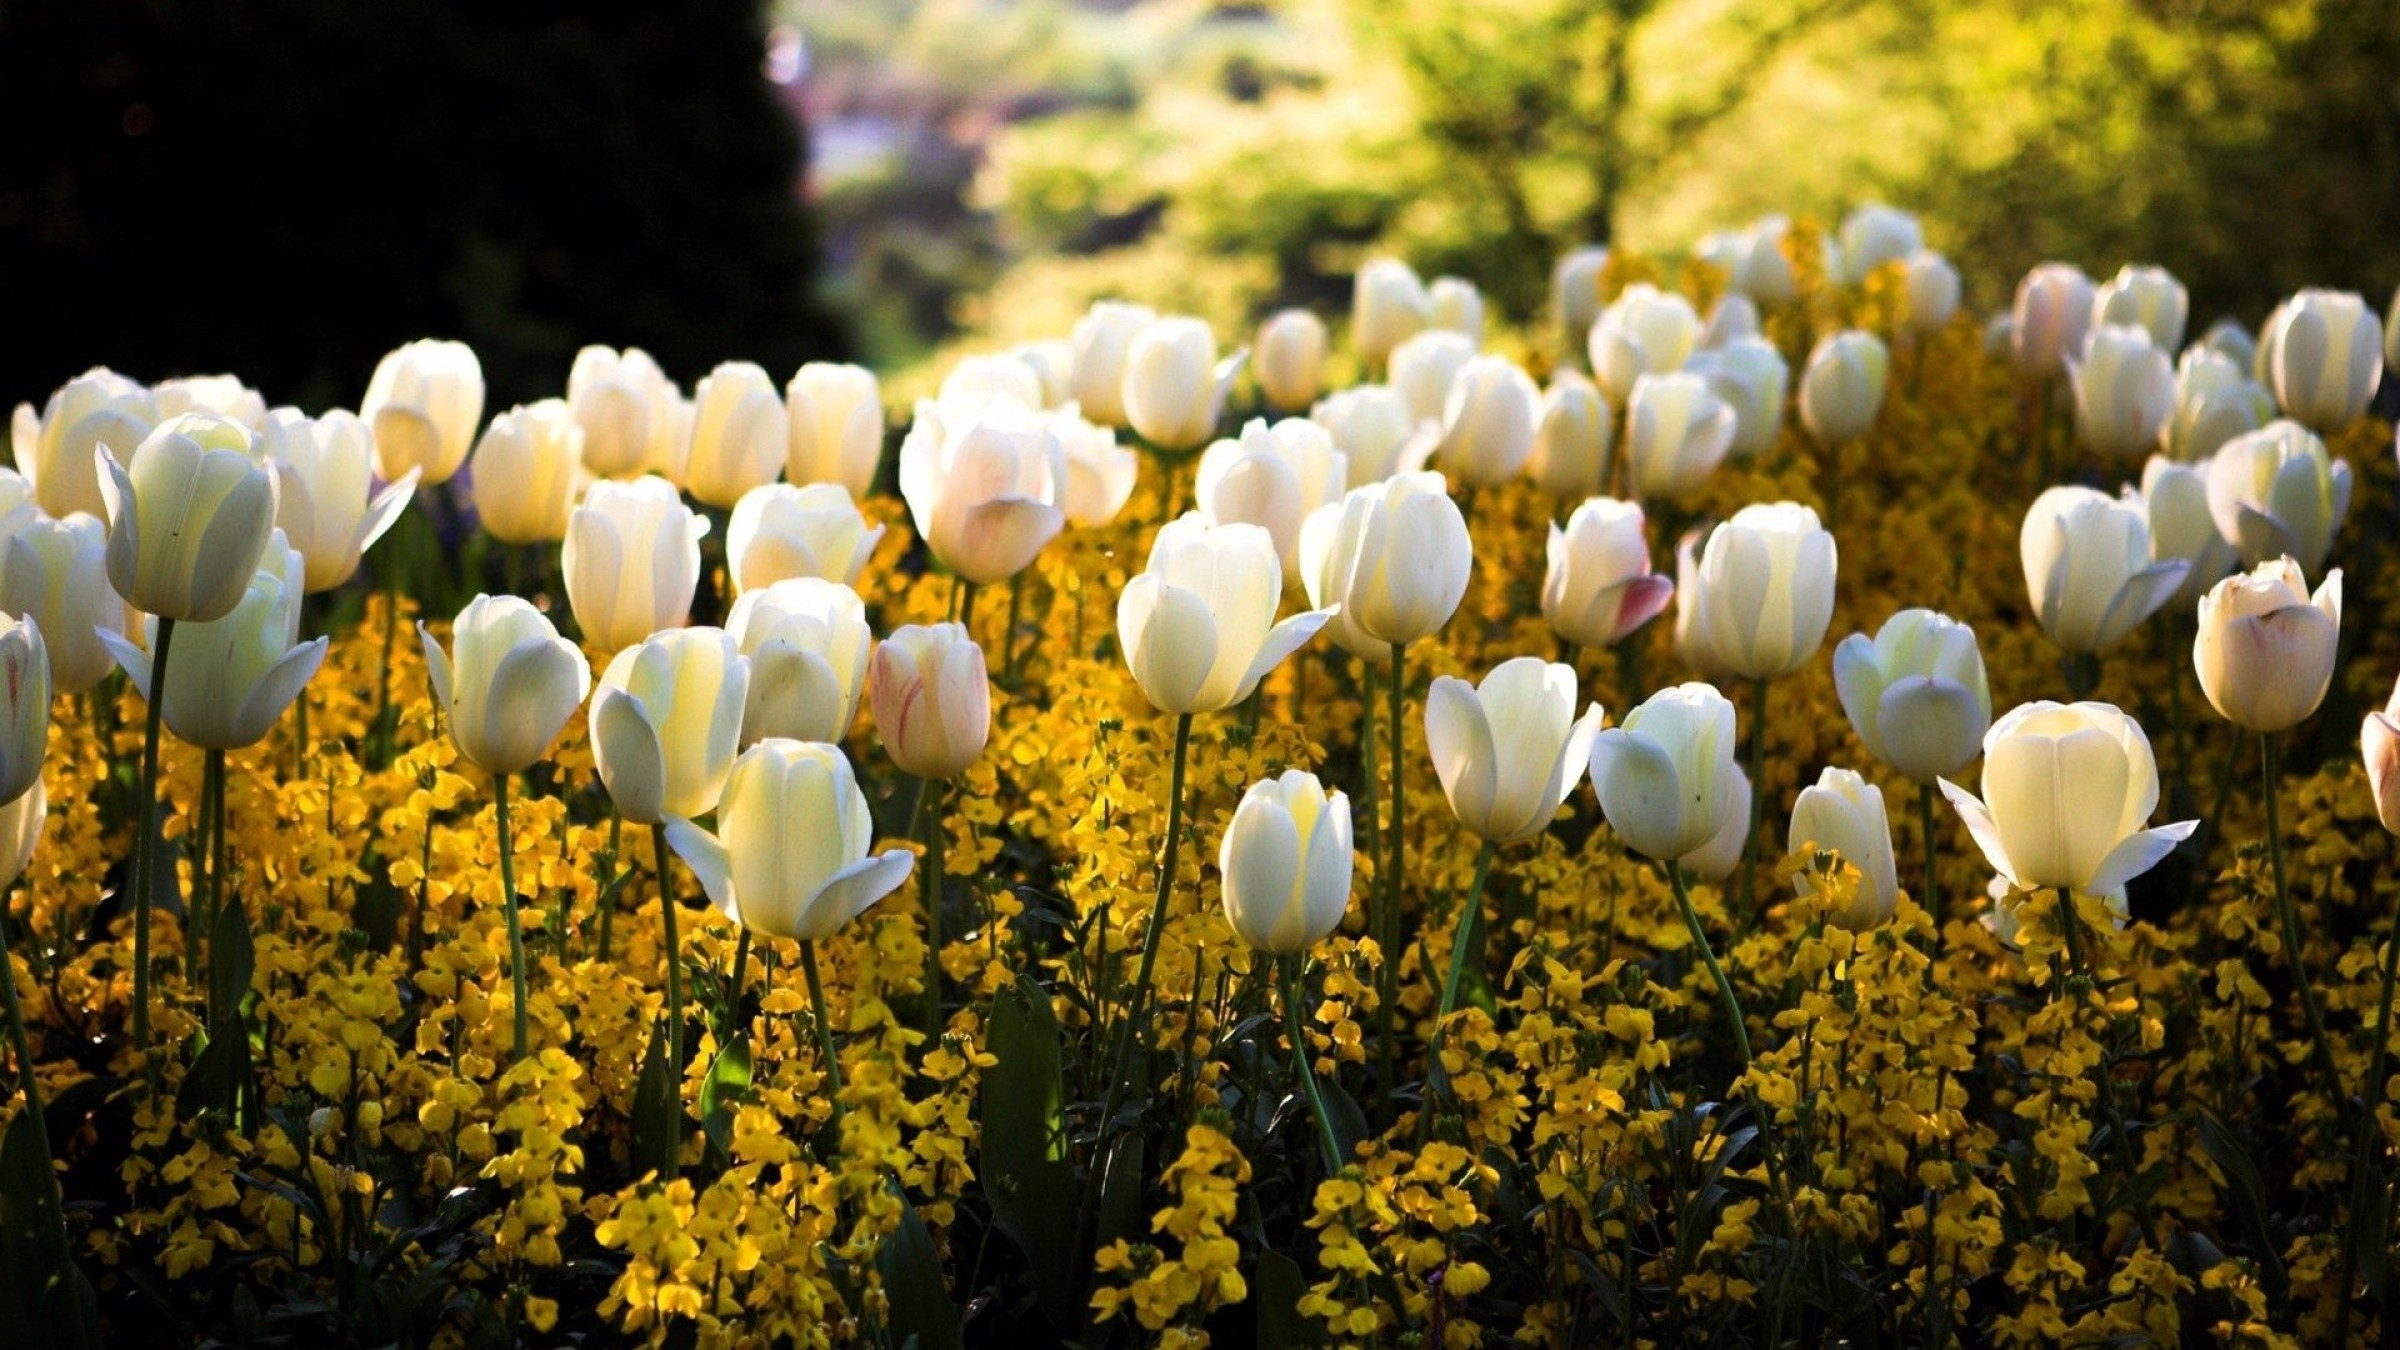 White tulips yellow flowers pictures photos and images for white tulips yellow flowers mightylinksfo